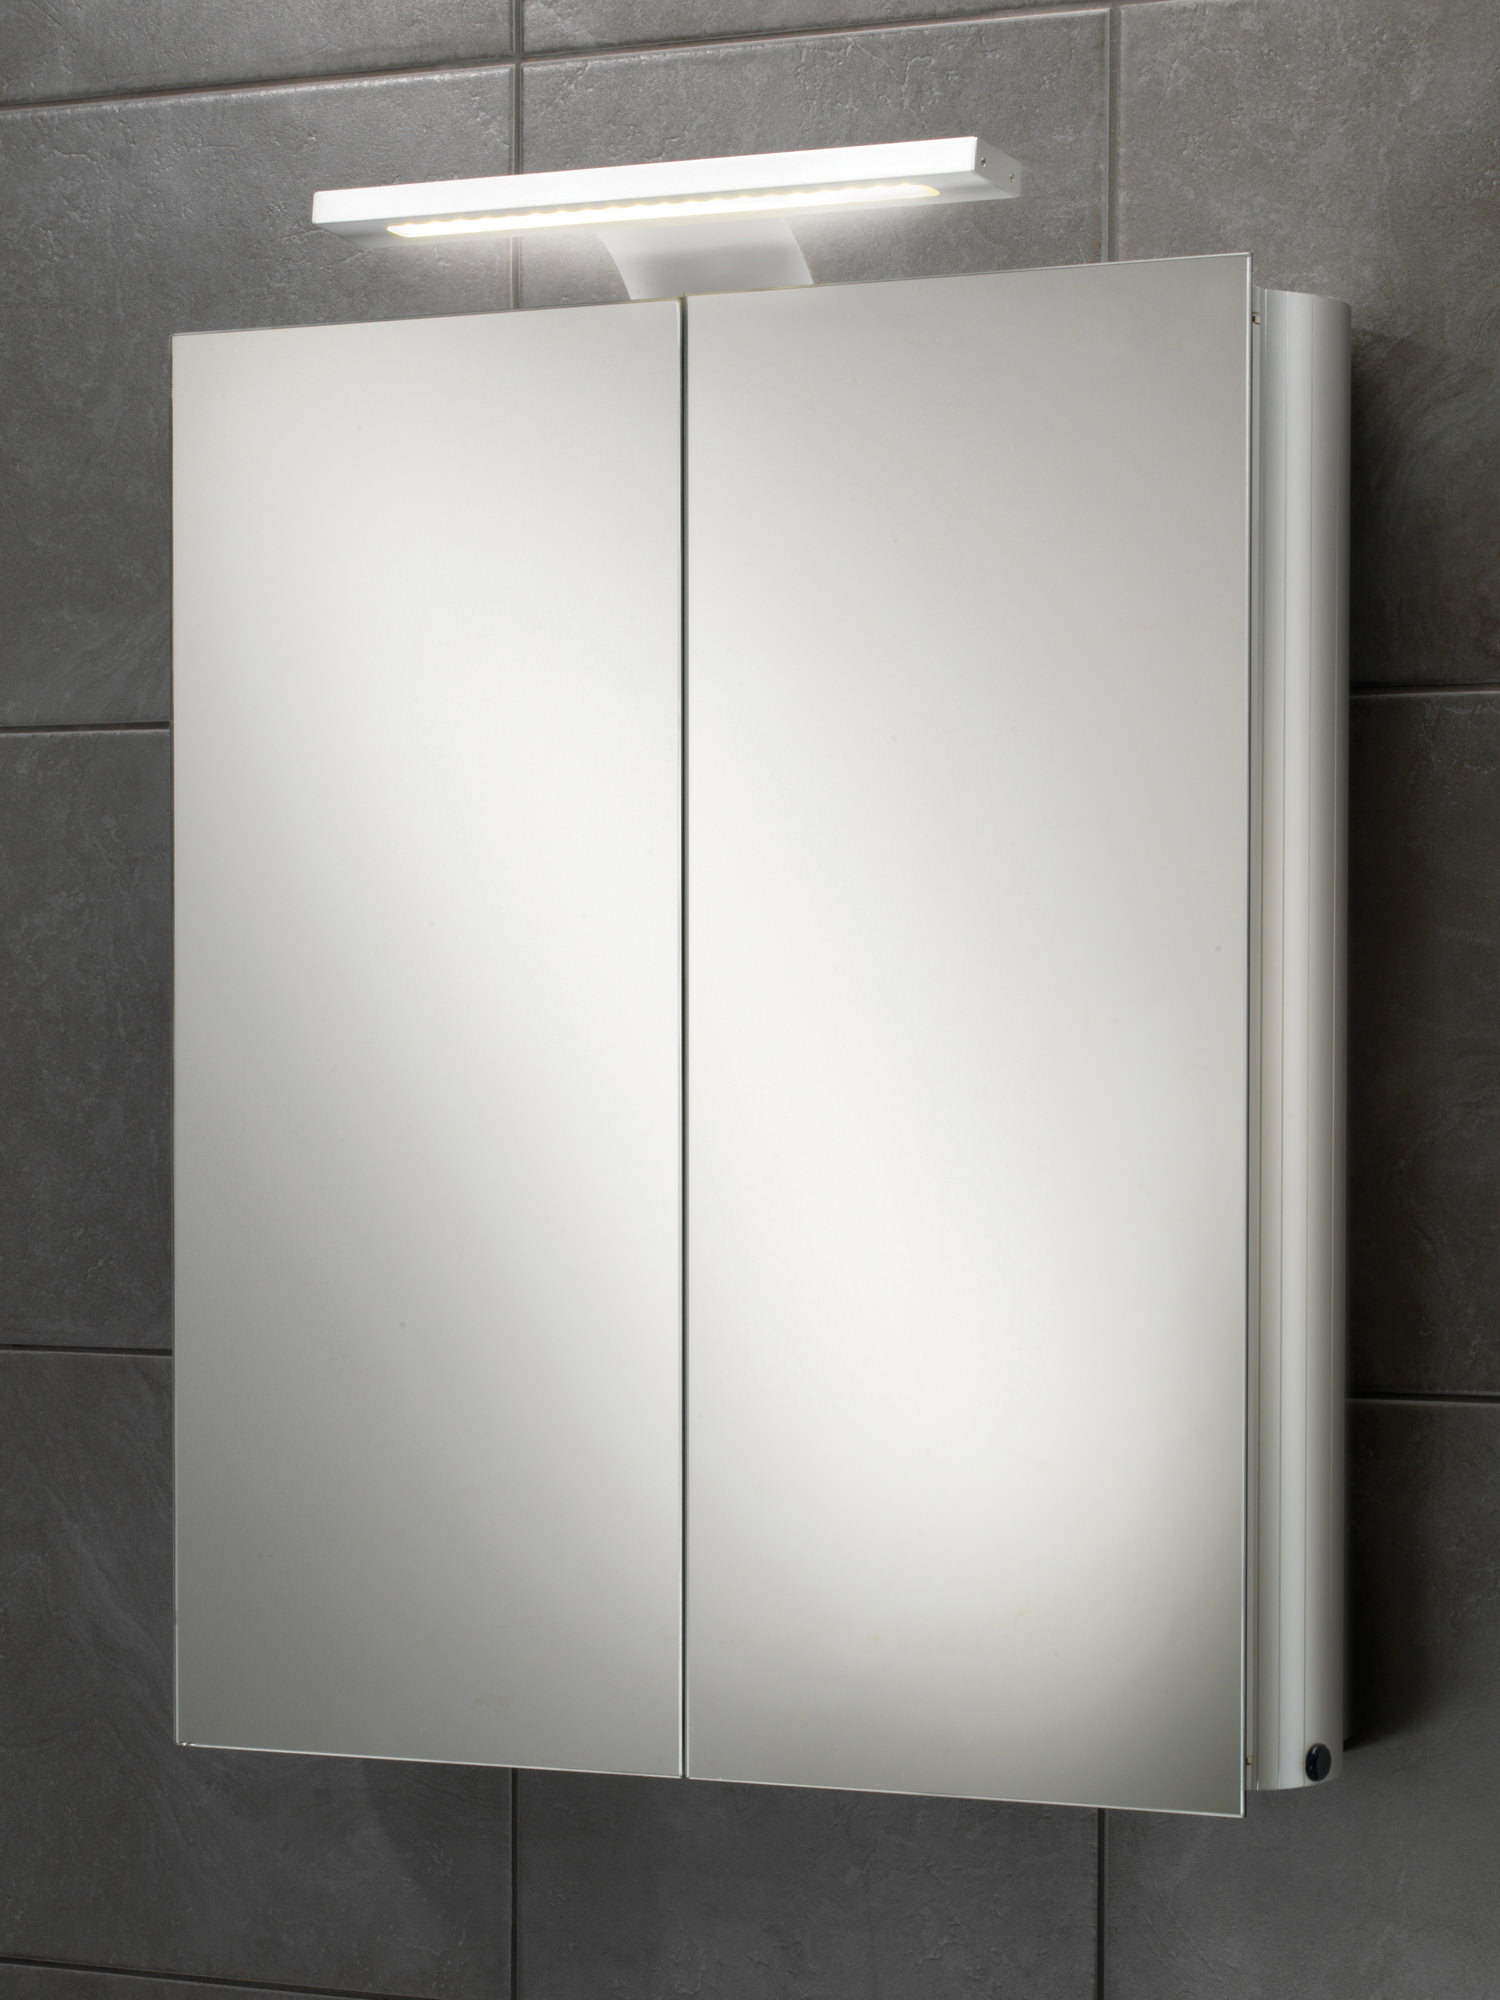 Hib Atomic Led Illuminated Double Door Aluminium Mirrored